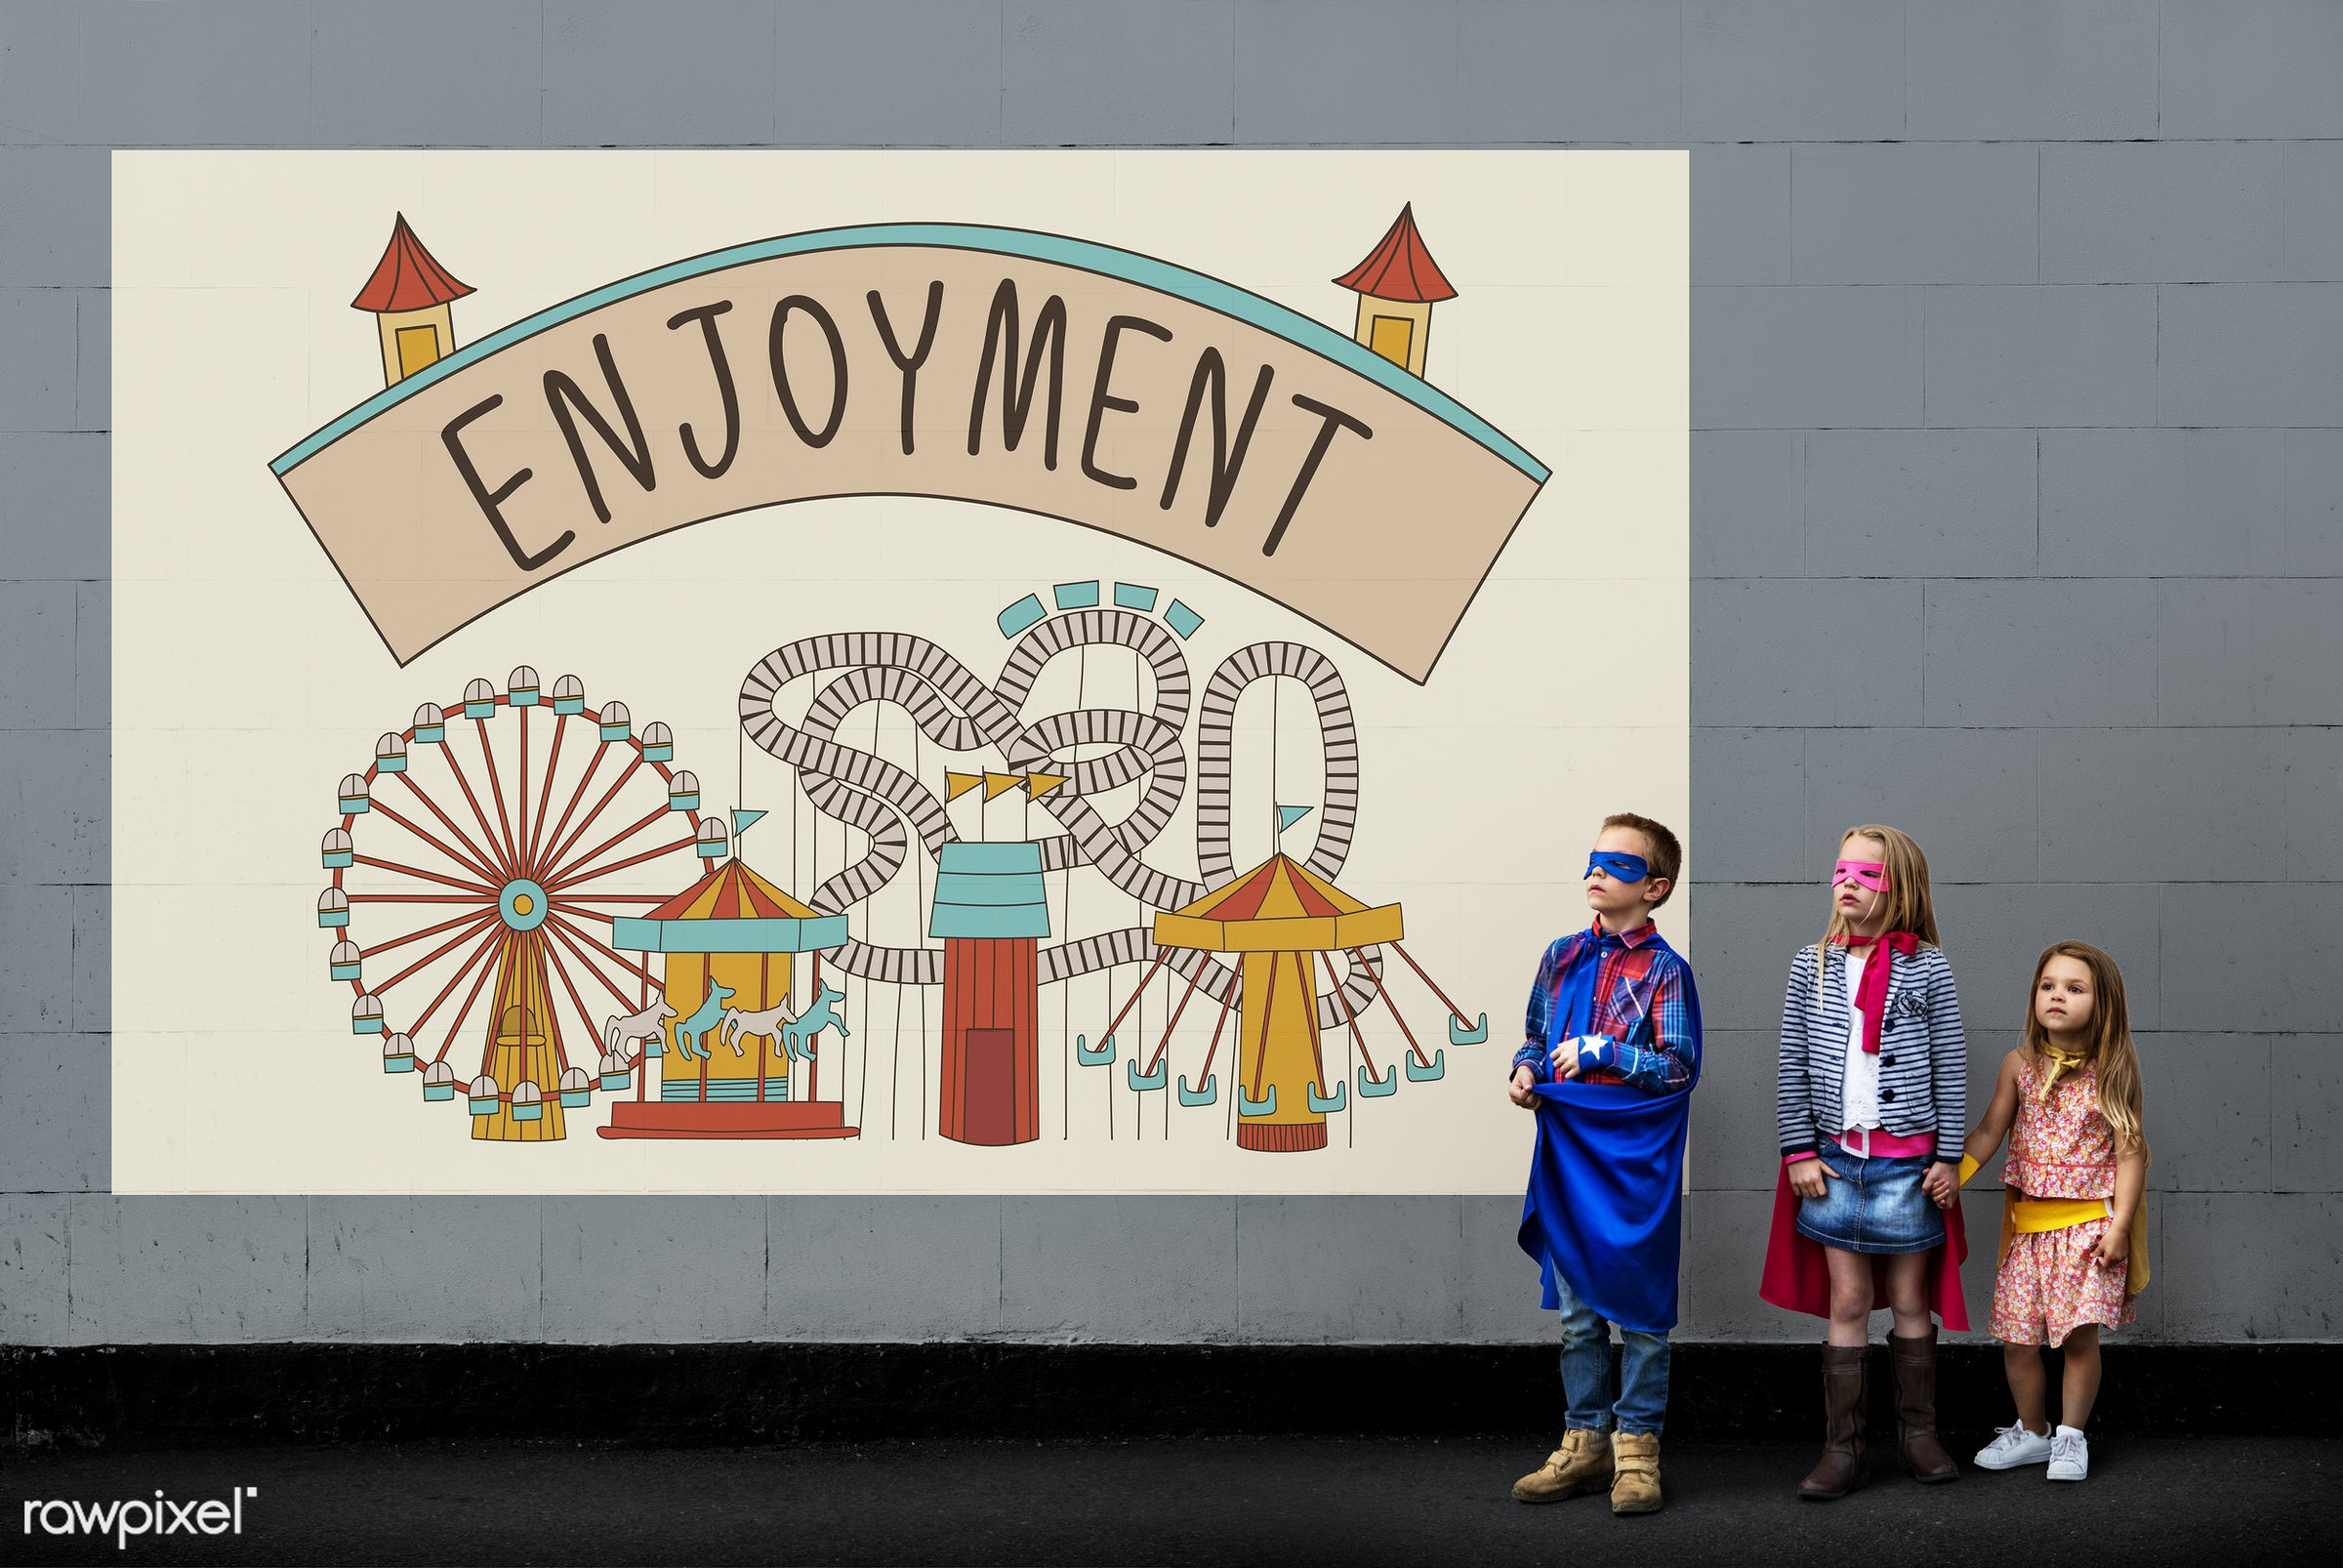 activity, amusement, aspiration, attraction, boys, brick wall, building, child, childhood, children, costumes, creative,...